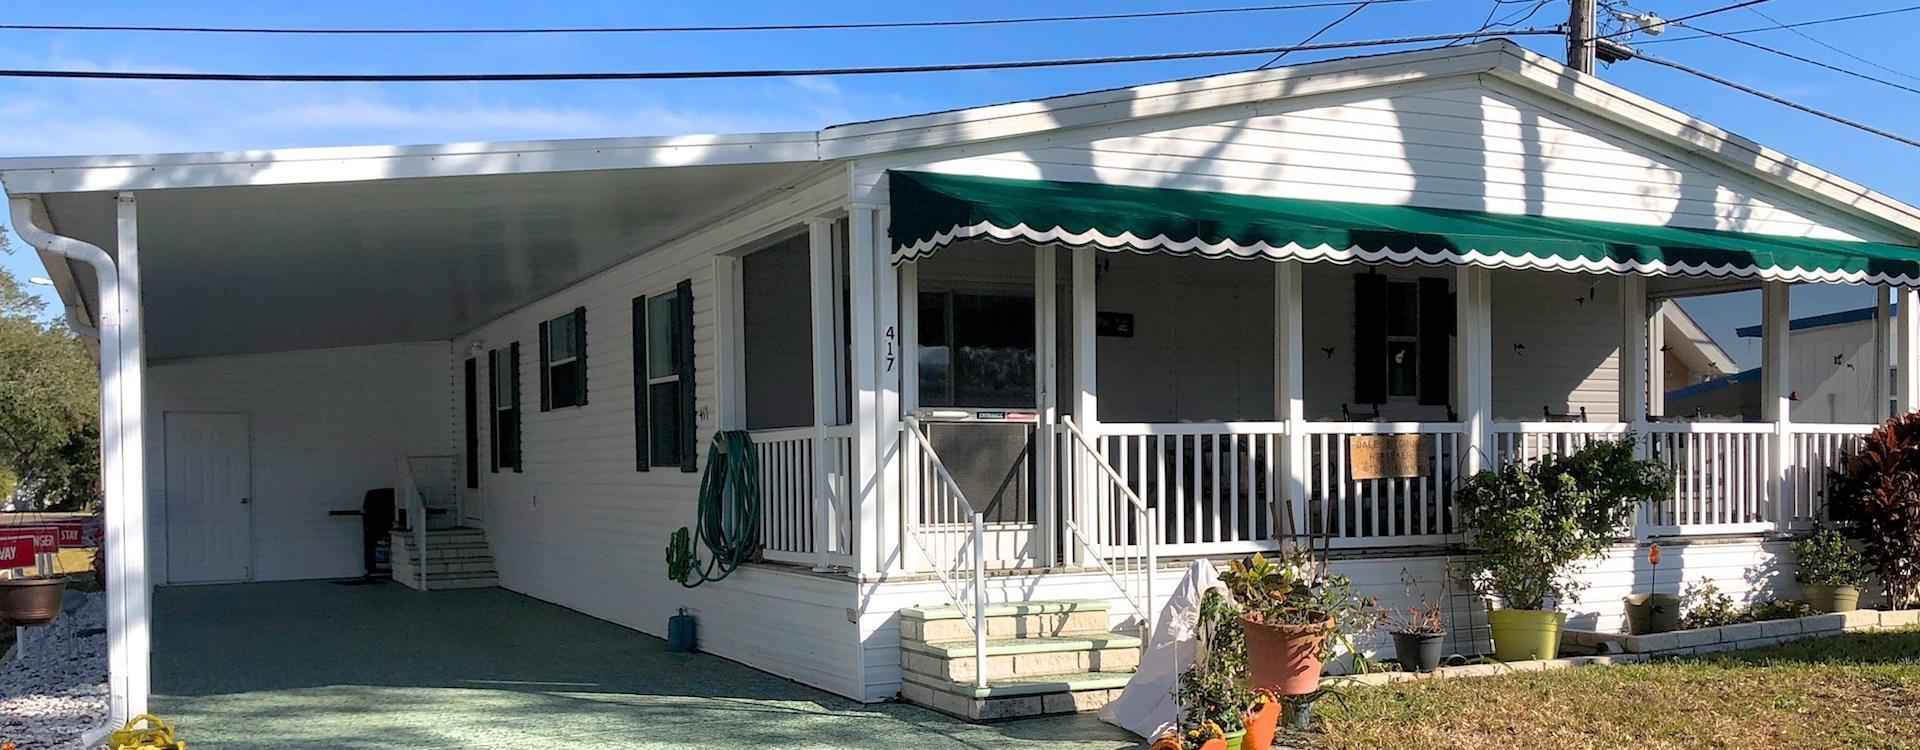 Mobile Homes For Sale In Tarpon Springs Fl